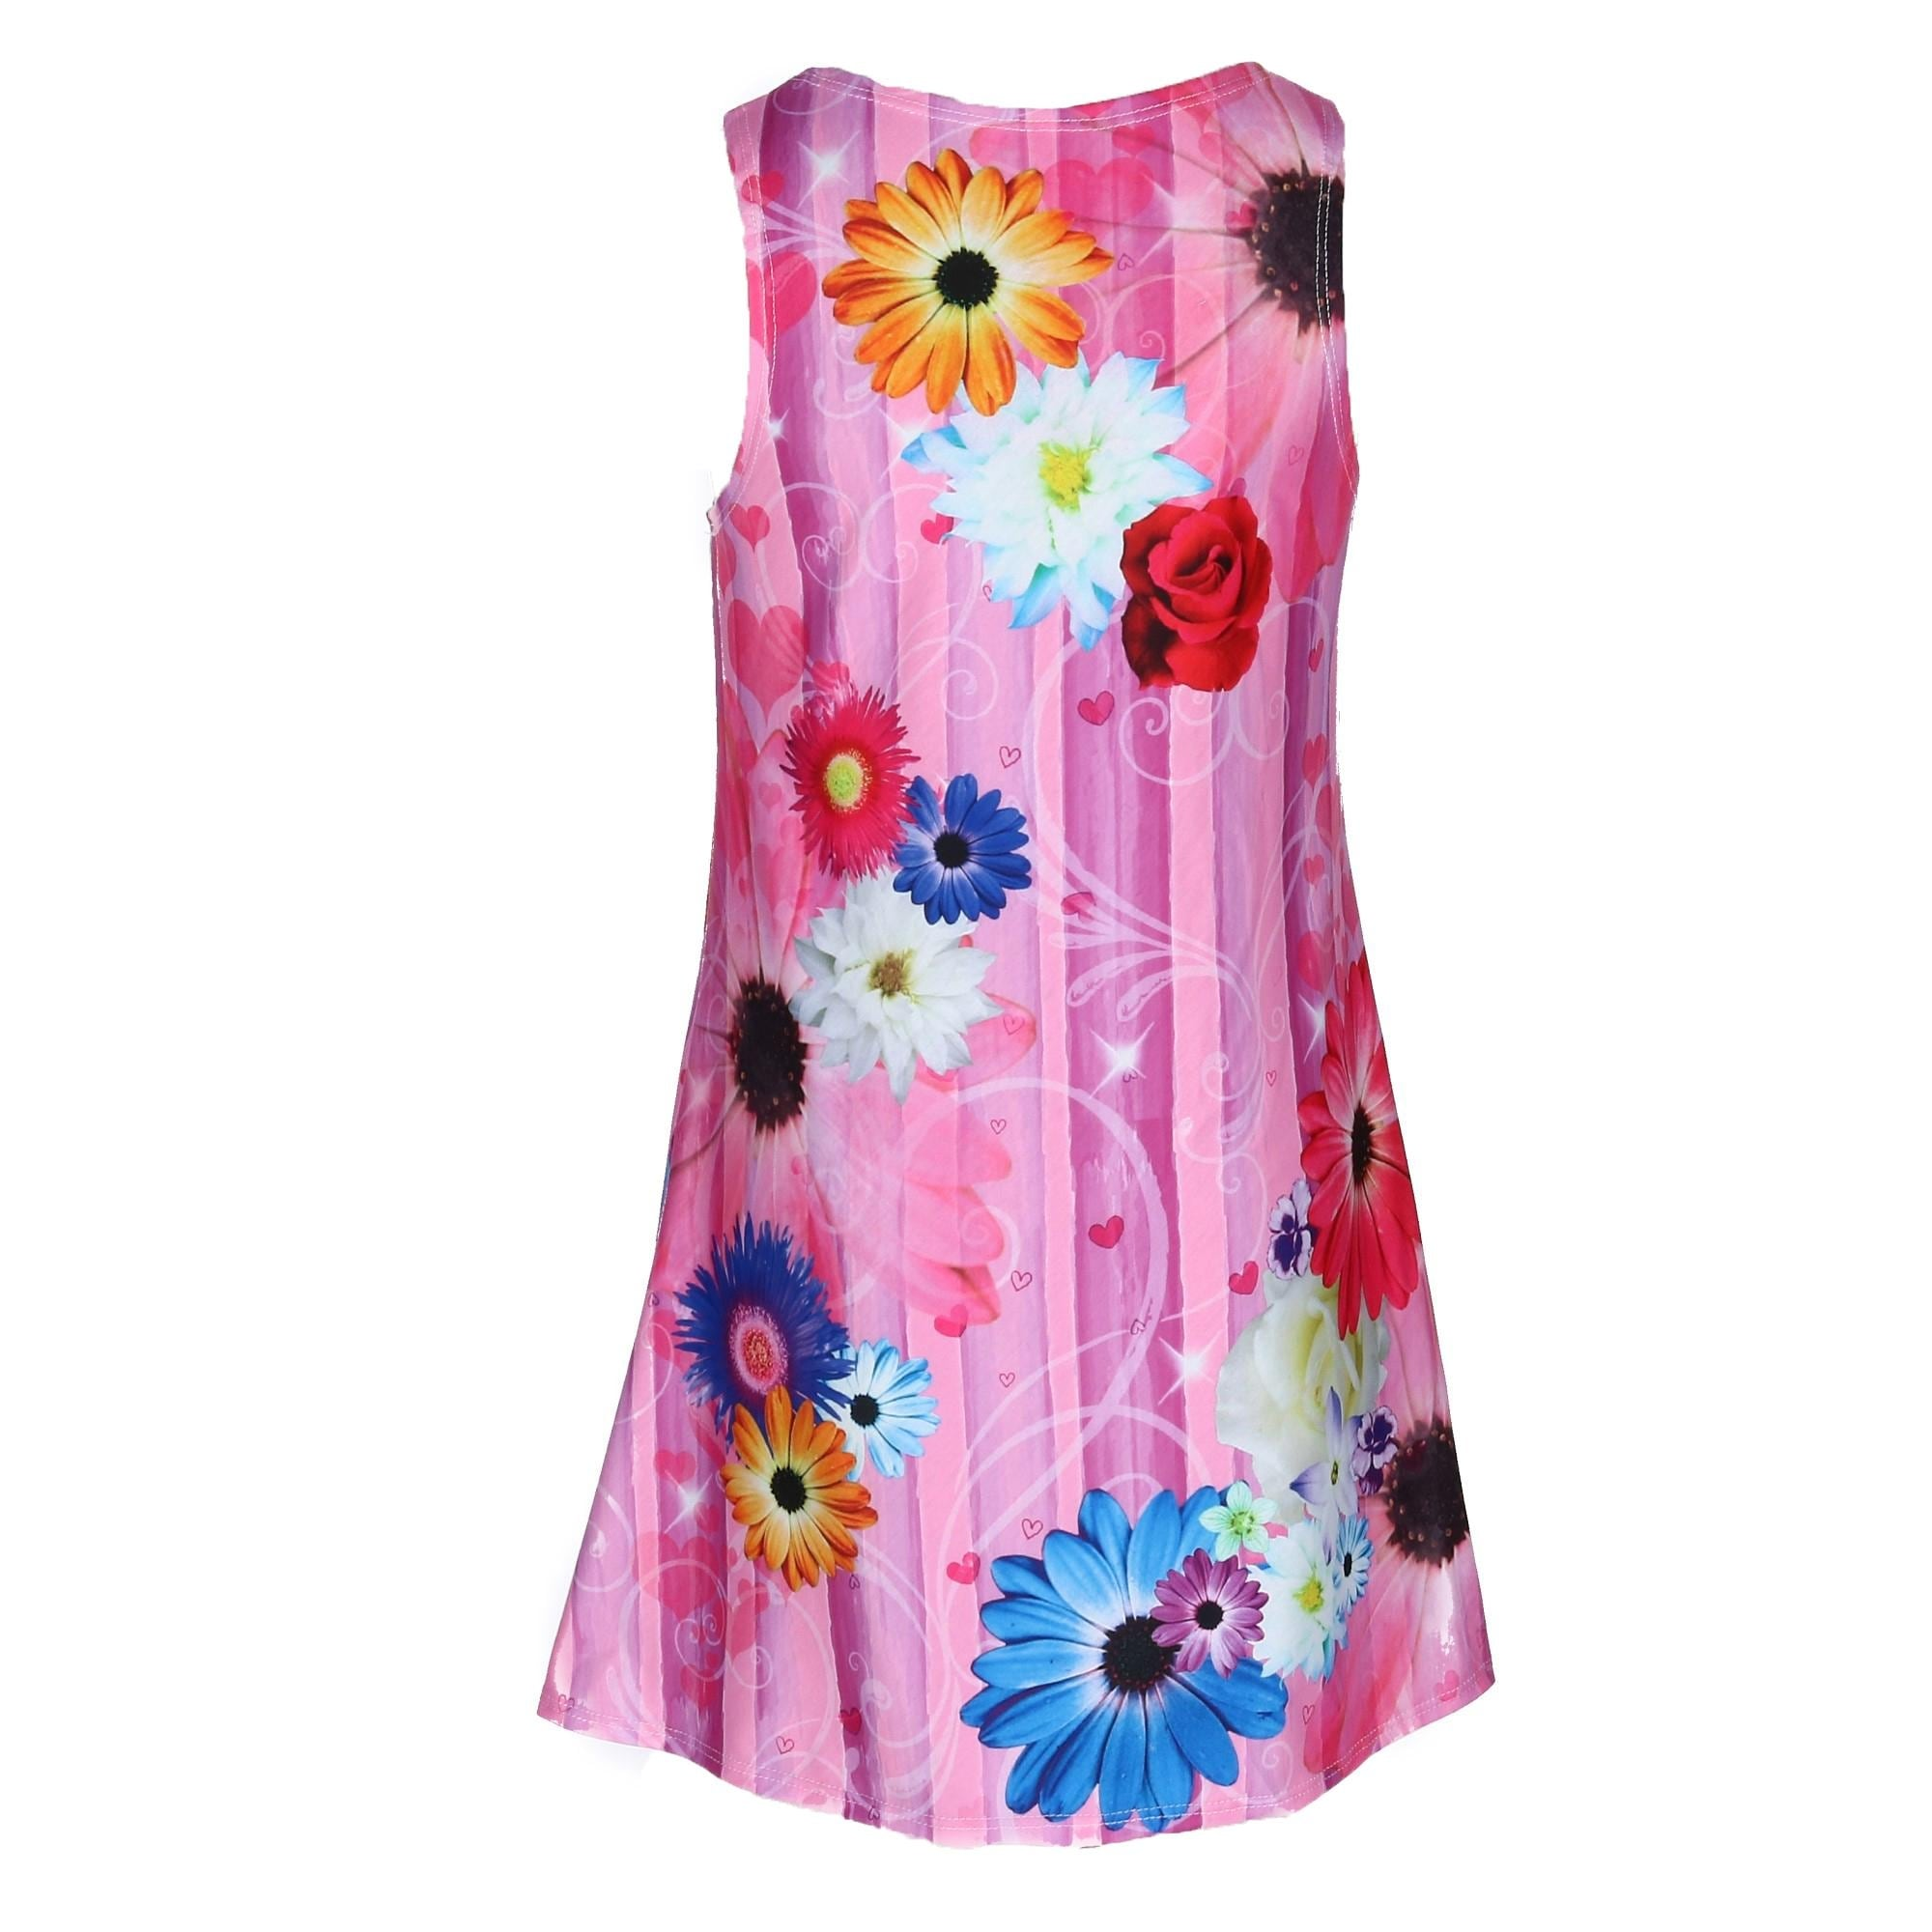 42b08c3e12453 Shop Disney Girl's Princess Cover Up Tank Dress - Free Shipping On Orders  Over $45 - Overstock - 27600717